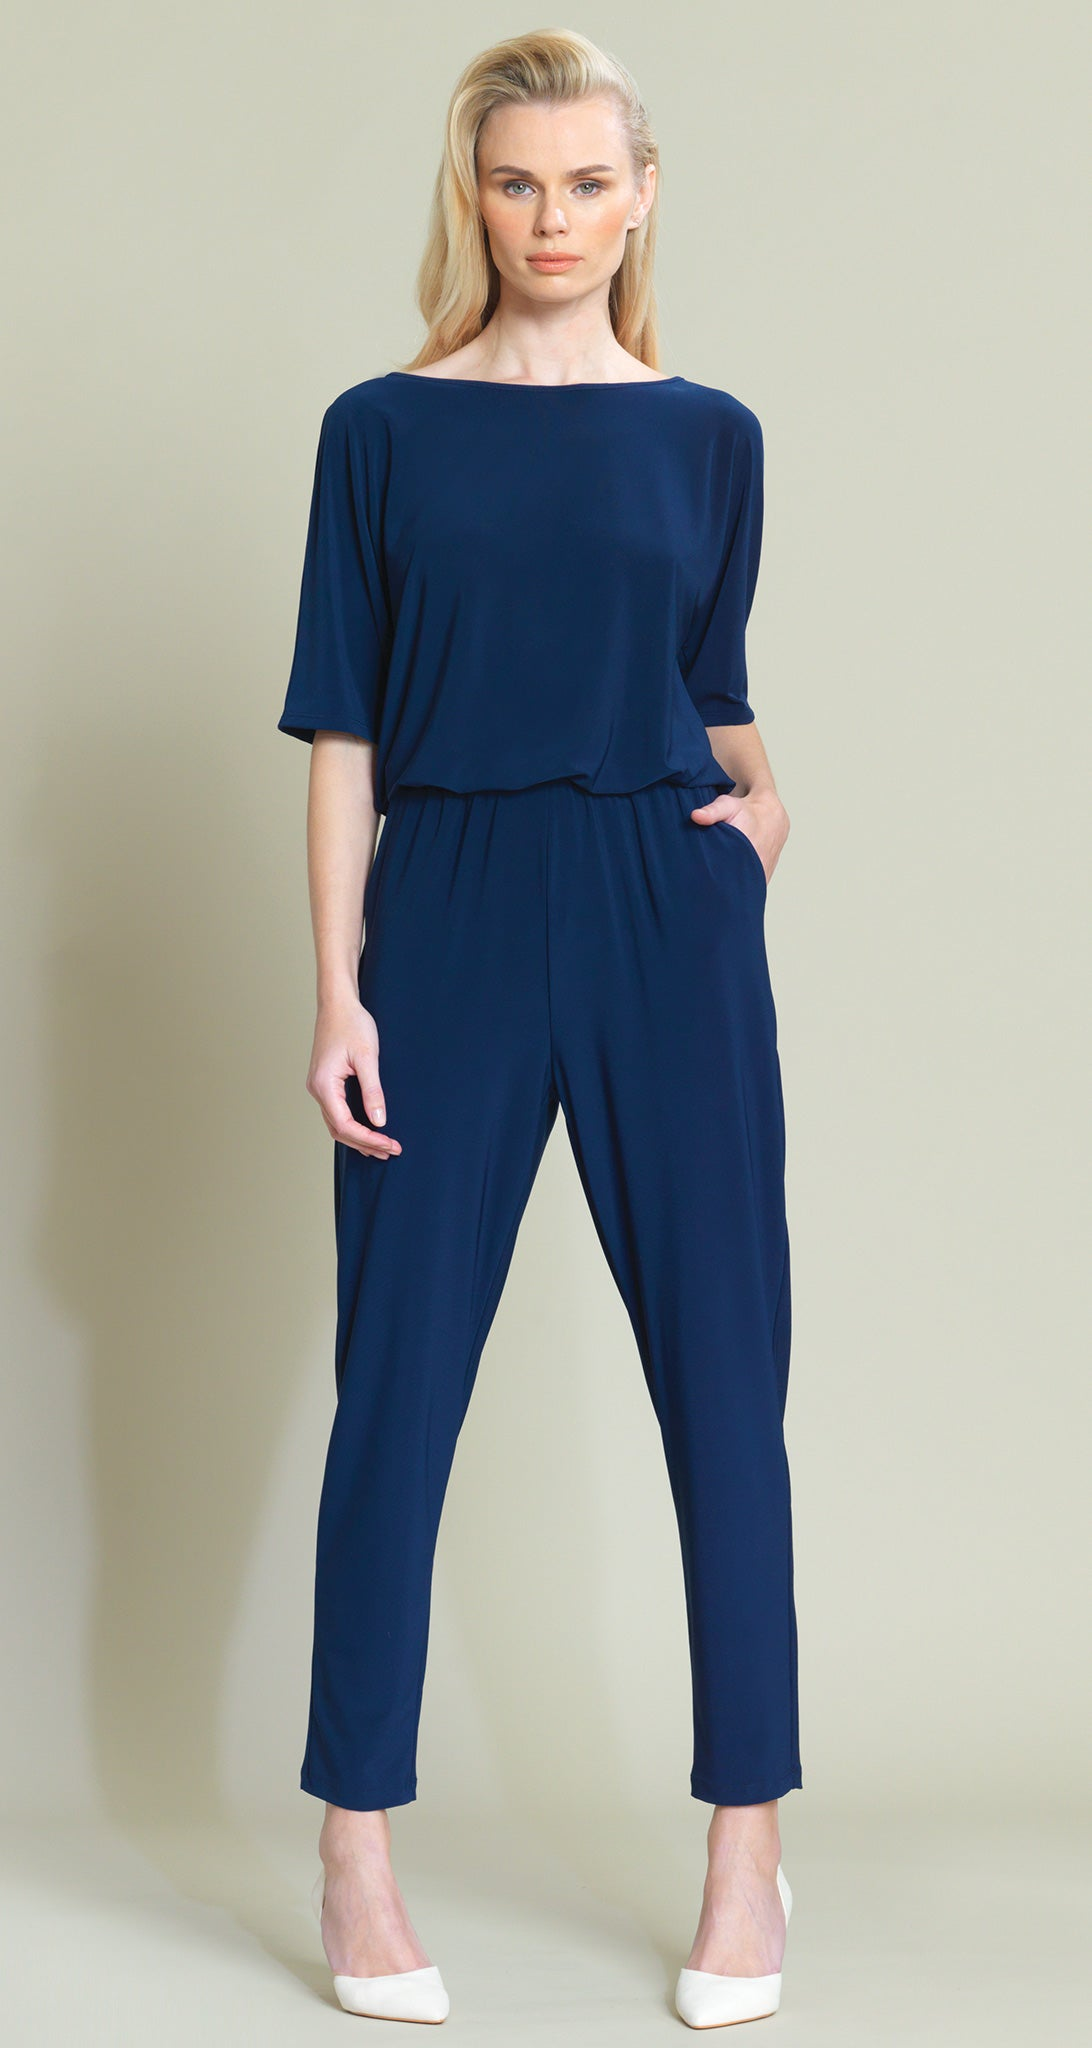 Solid V-Cross Bar Cut-Out Jogger Pocket Jumpsuit - Navy - As Worn by Kathie Lee Gifford!